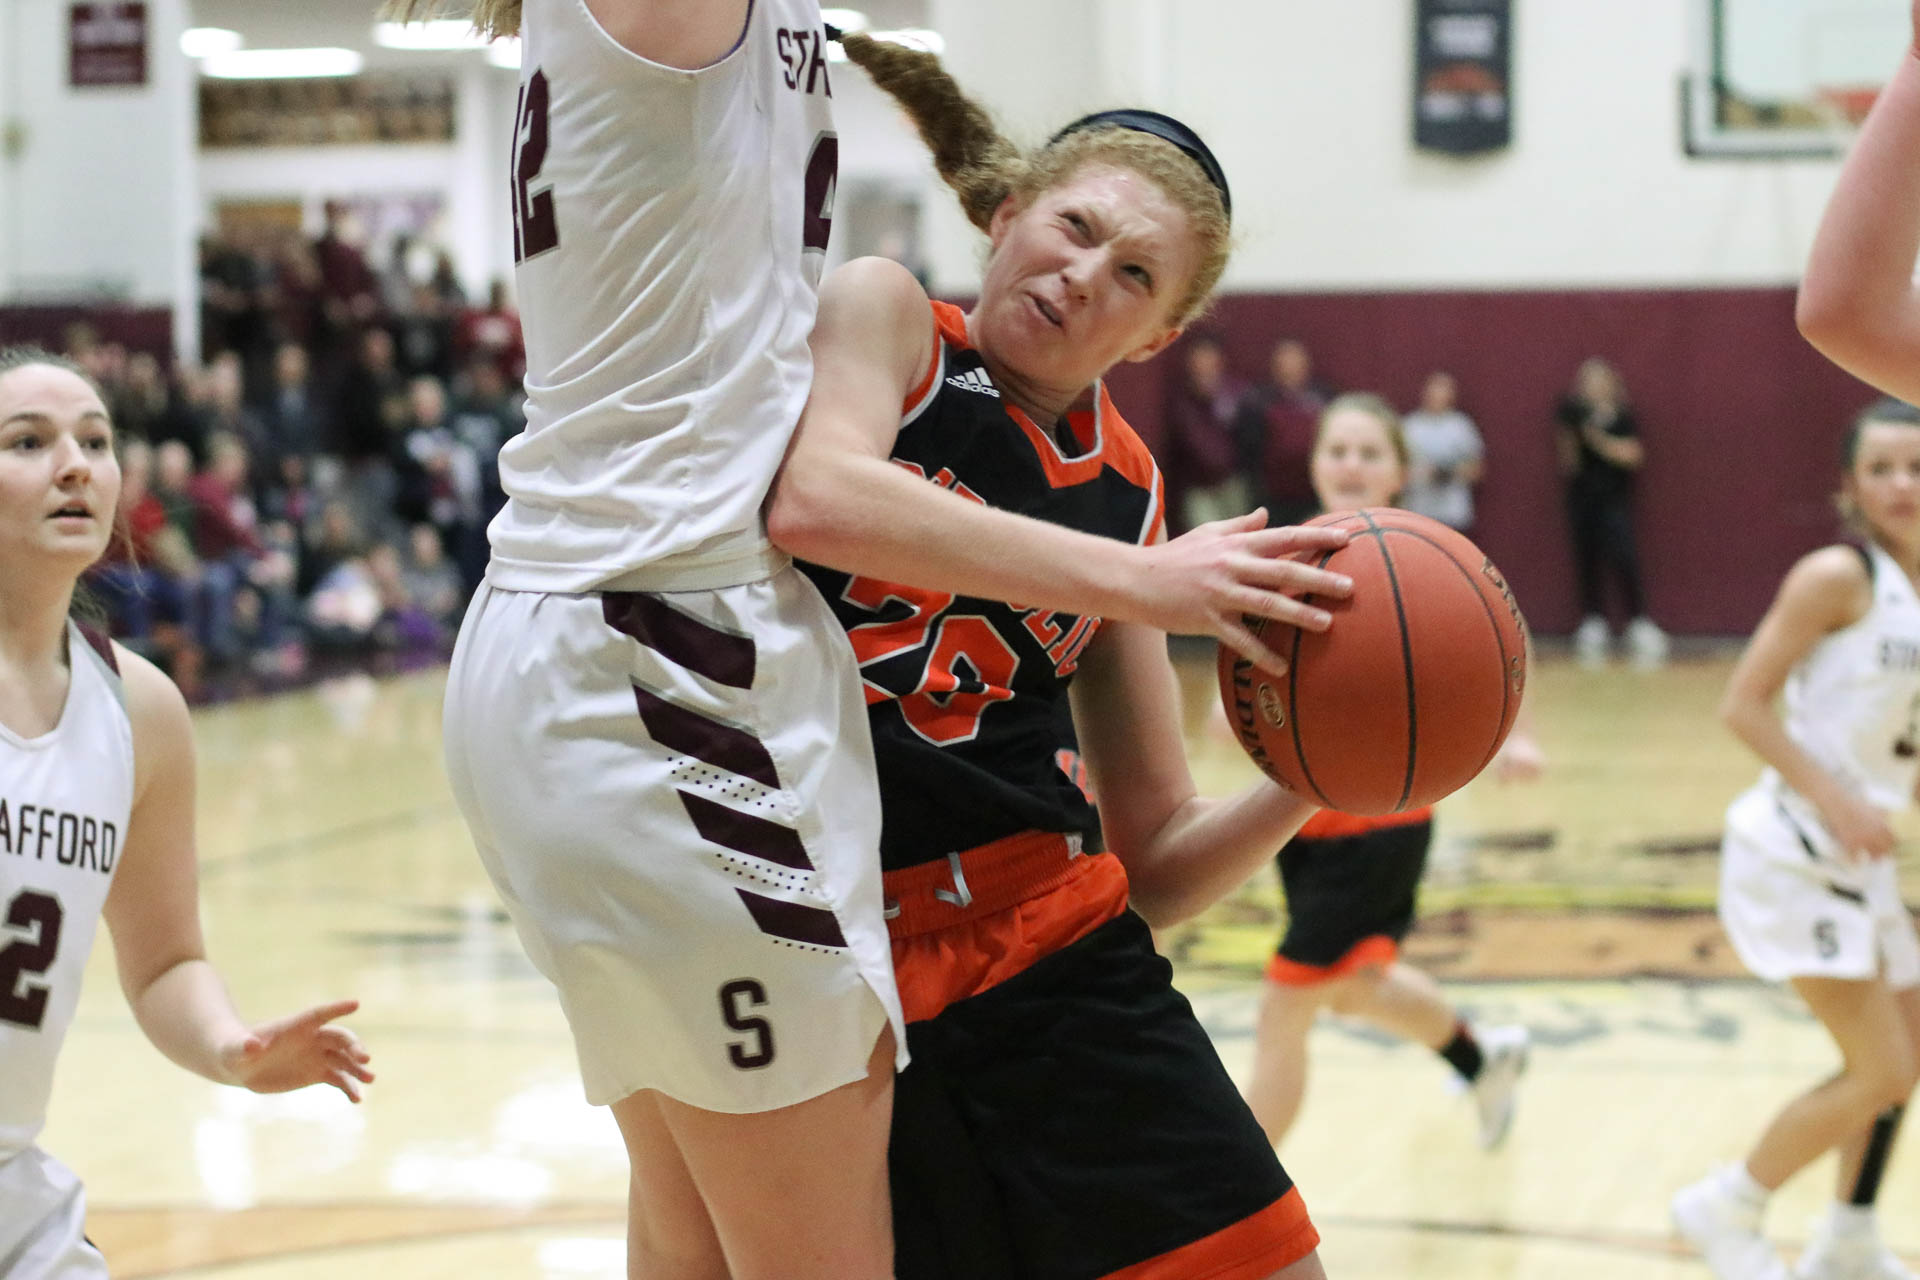 Strafford Runs Away With Record Win